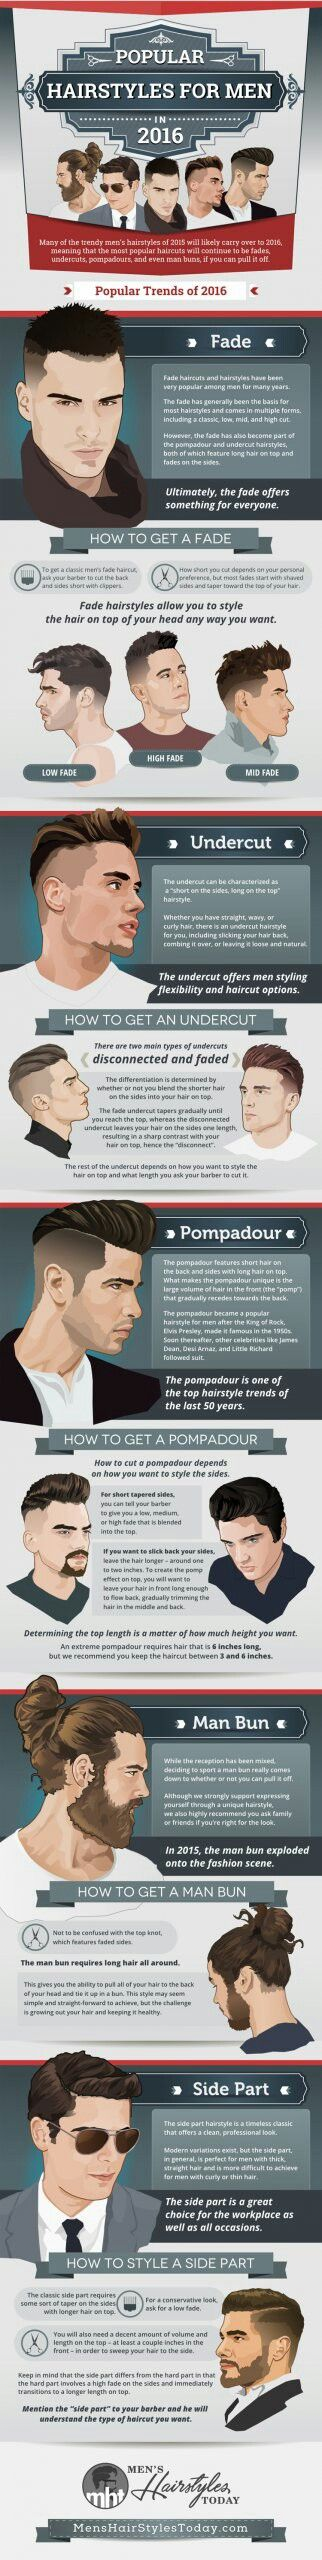 Popular hairstyles for men in 2016.